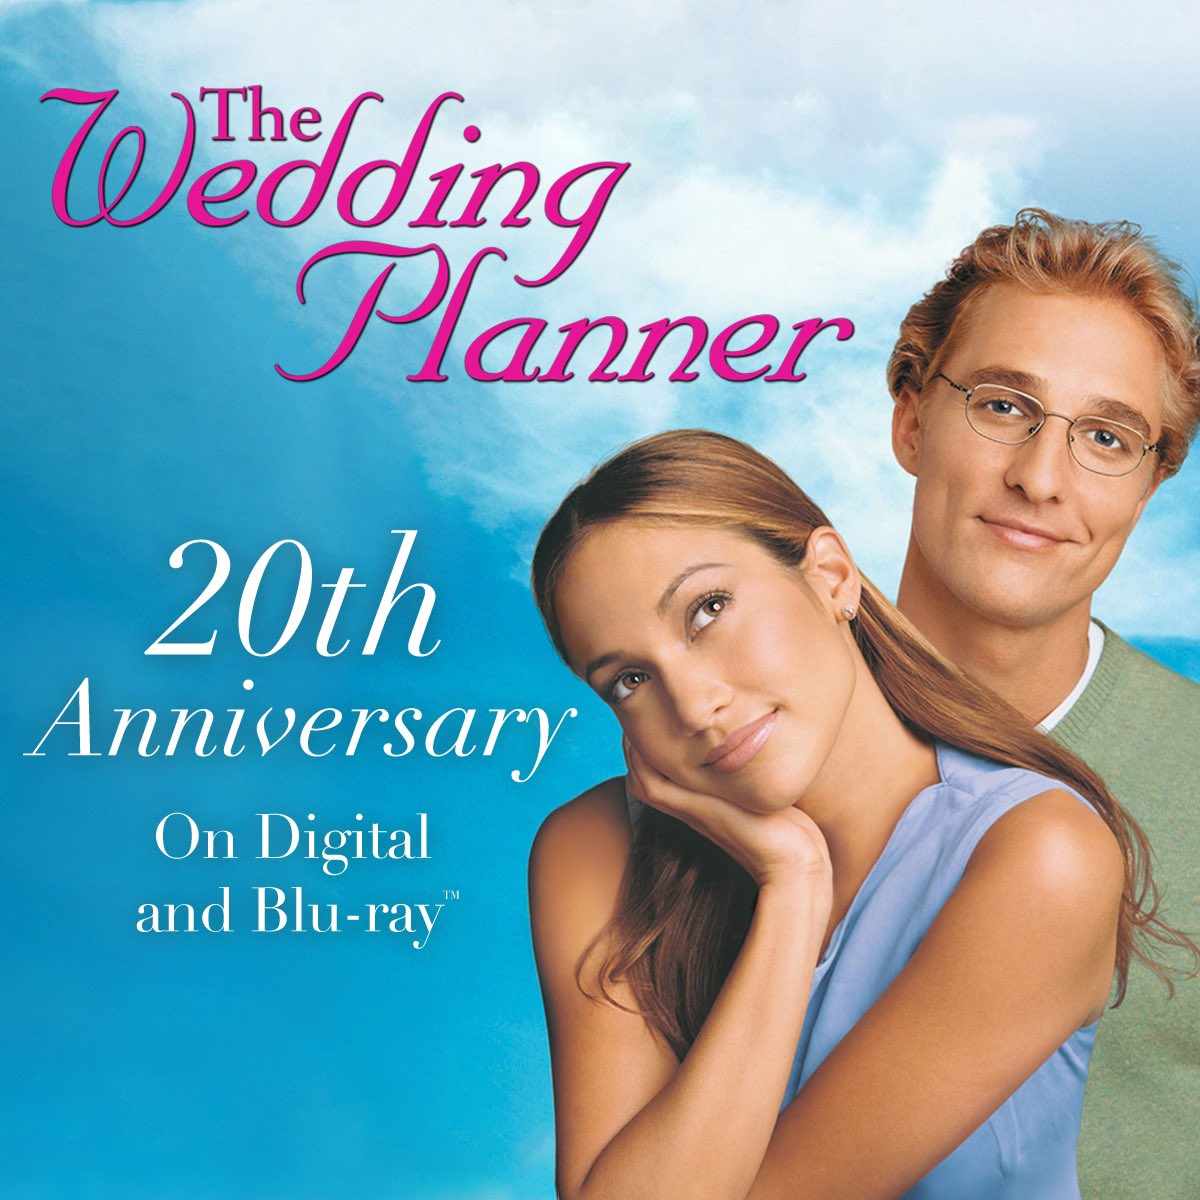 Love happens when you least expect it. 👩🏽❤️👨🏼 Celebrate the 20th anniversary of #TheWeddingPlanner by buying and watching today: